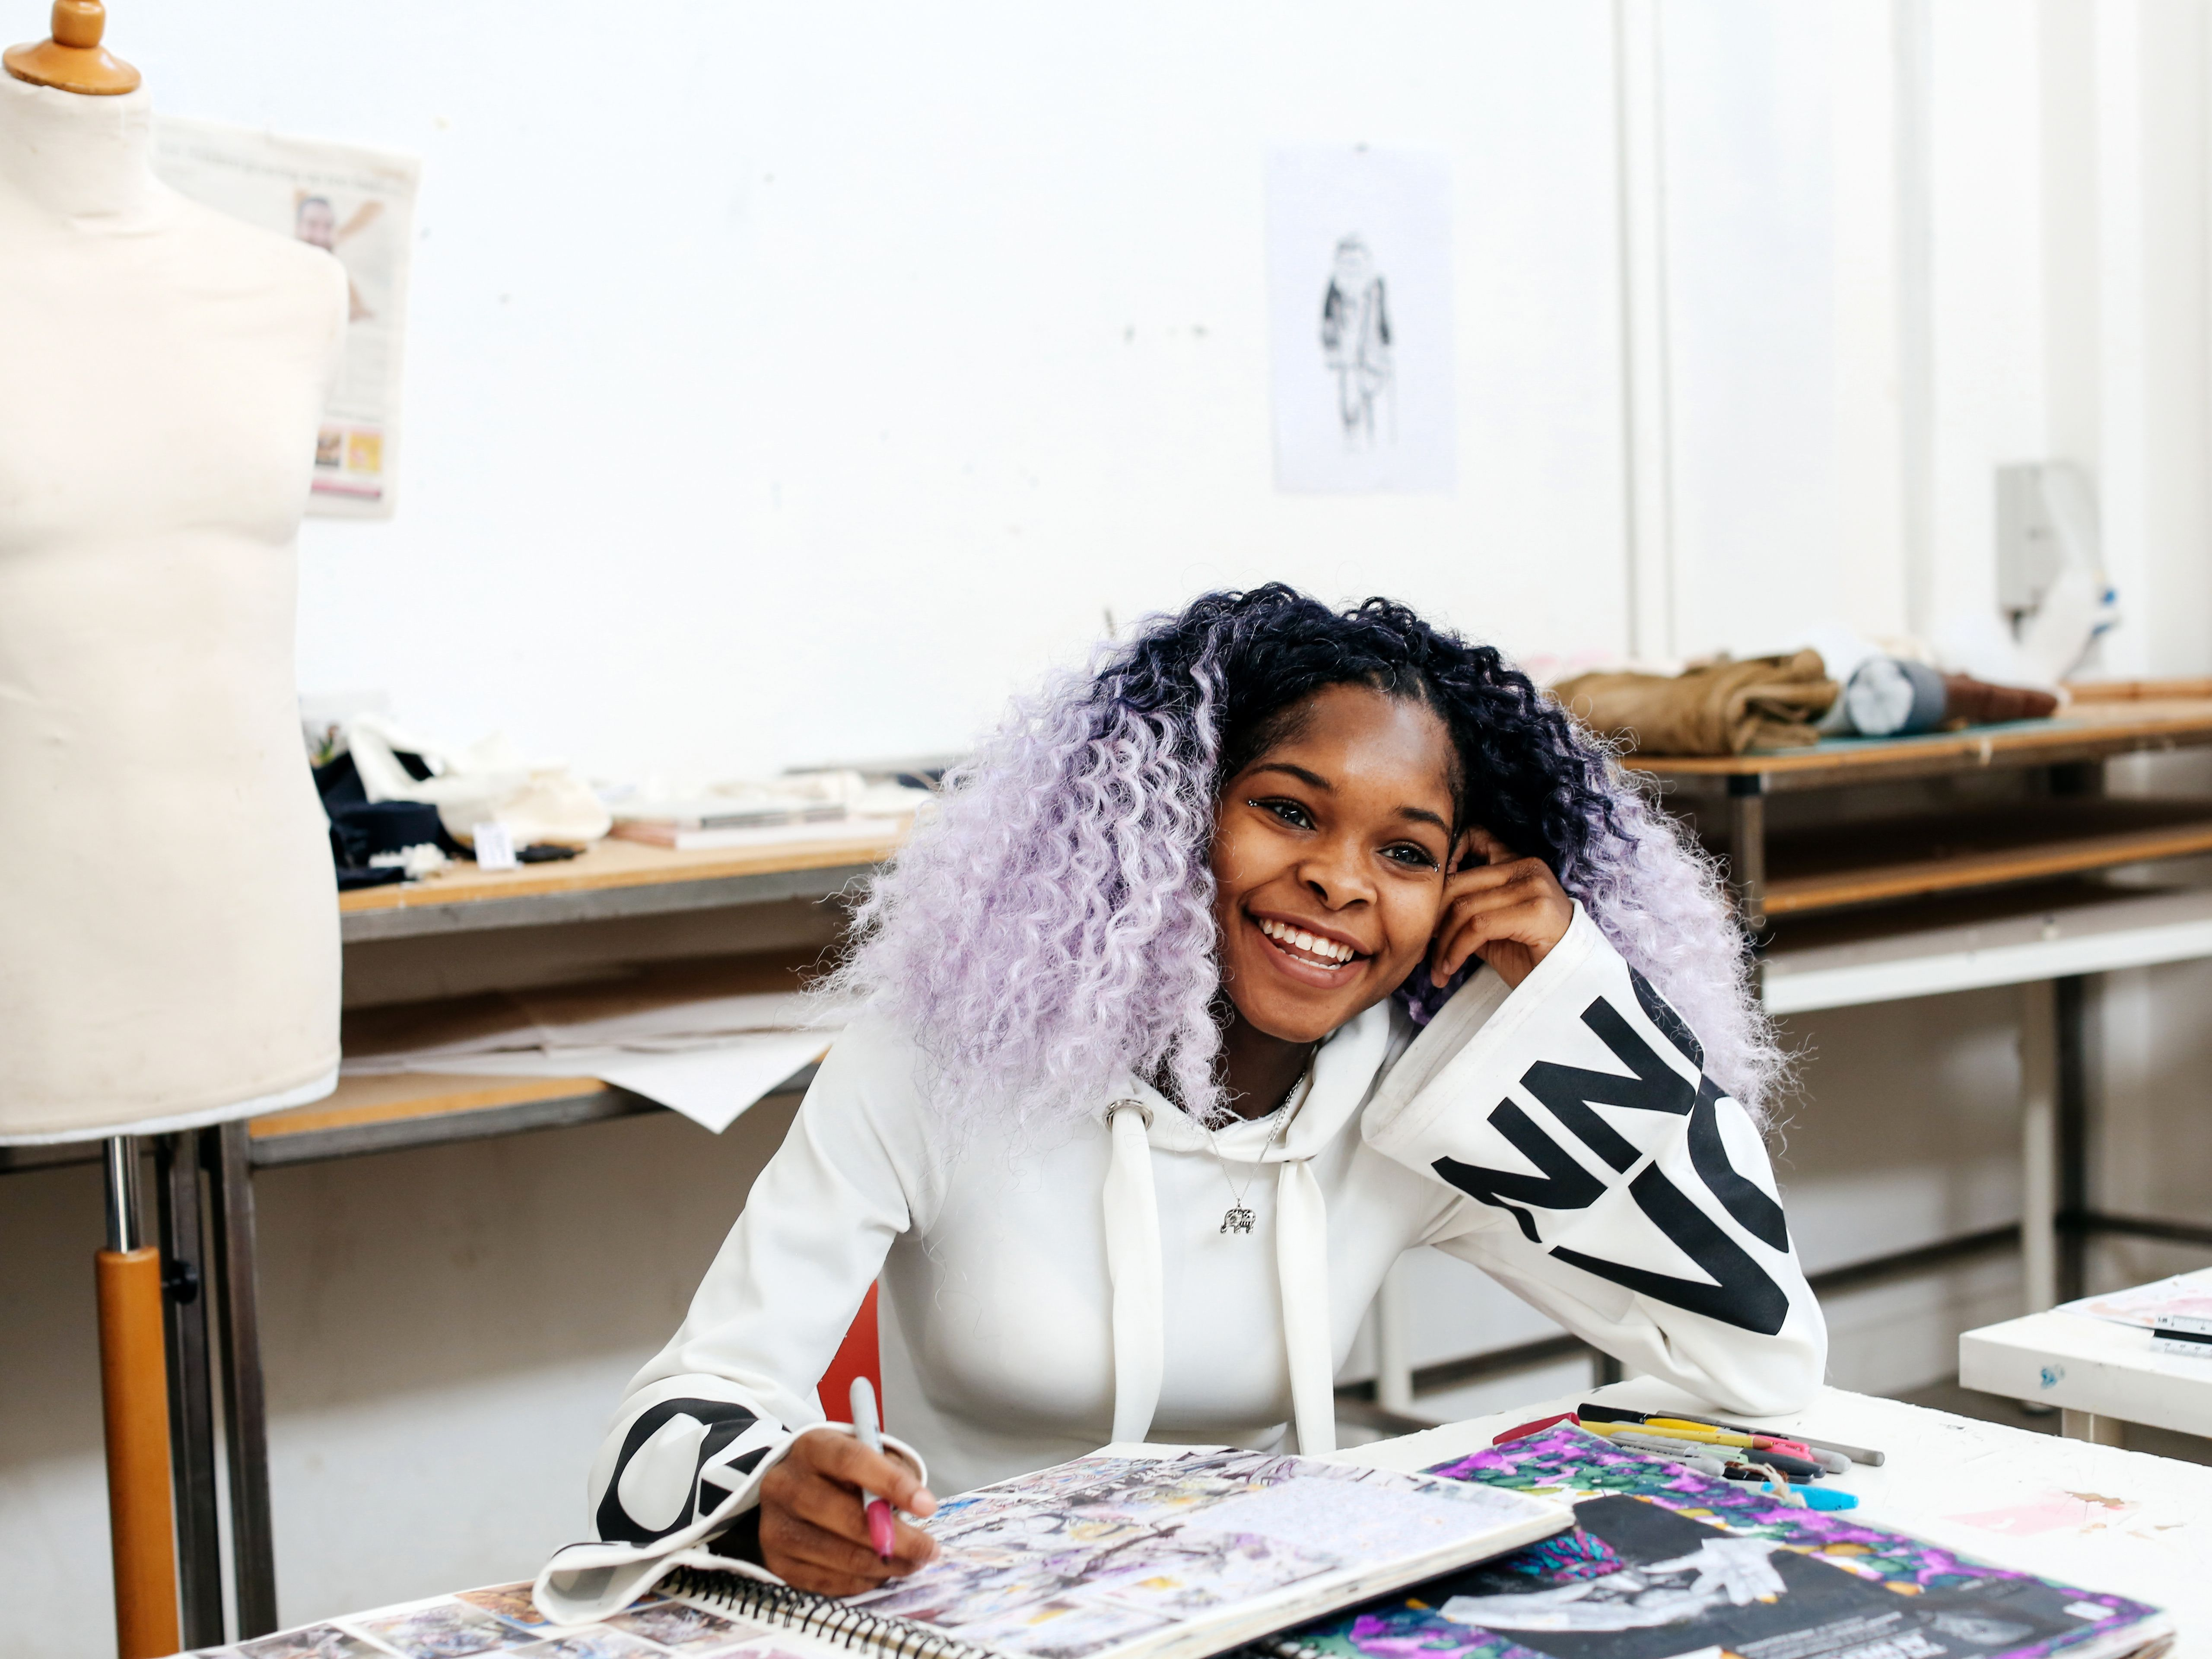 Student working on sketches in studio